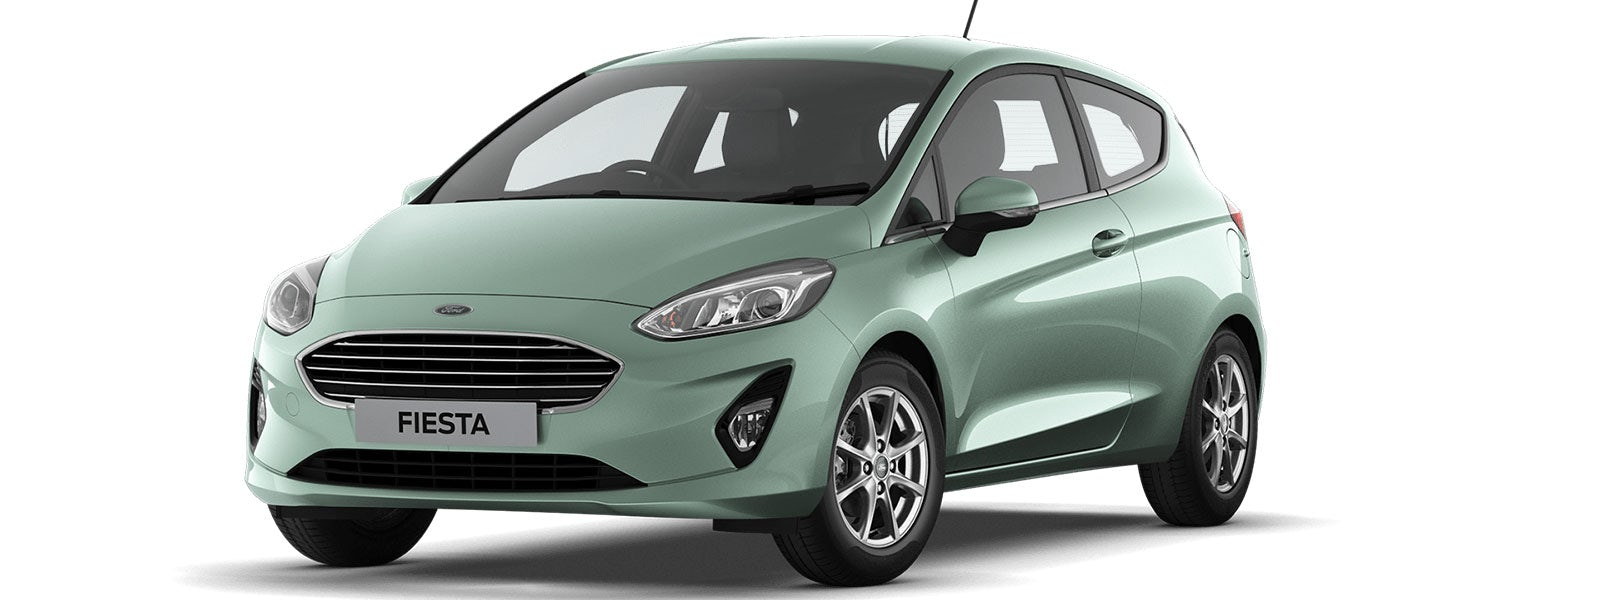 2017 ford fiesta colours guide and prices carwow frequent washing and being a little more out there than some choices it might not sell as quickly as a more conventional colour on the used market publicscrutiny Choice Image